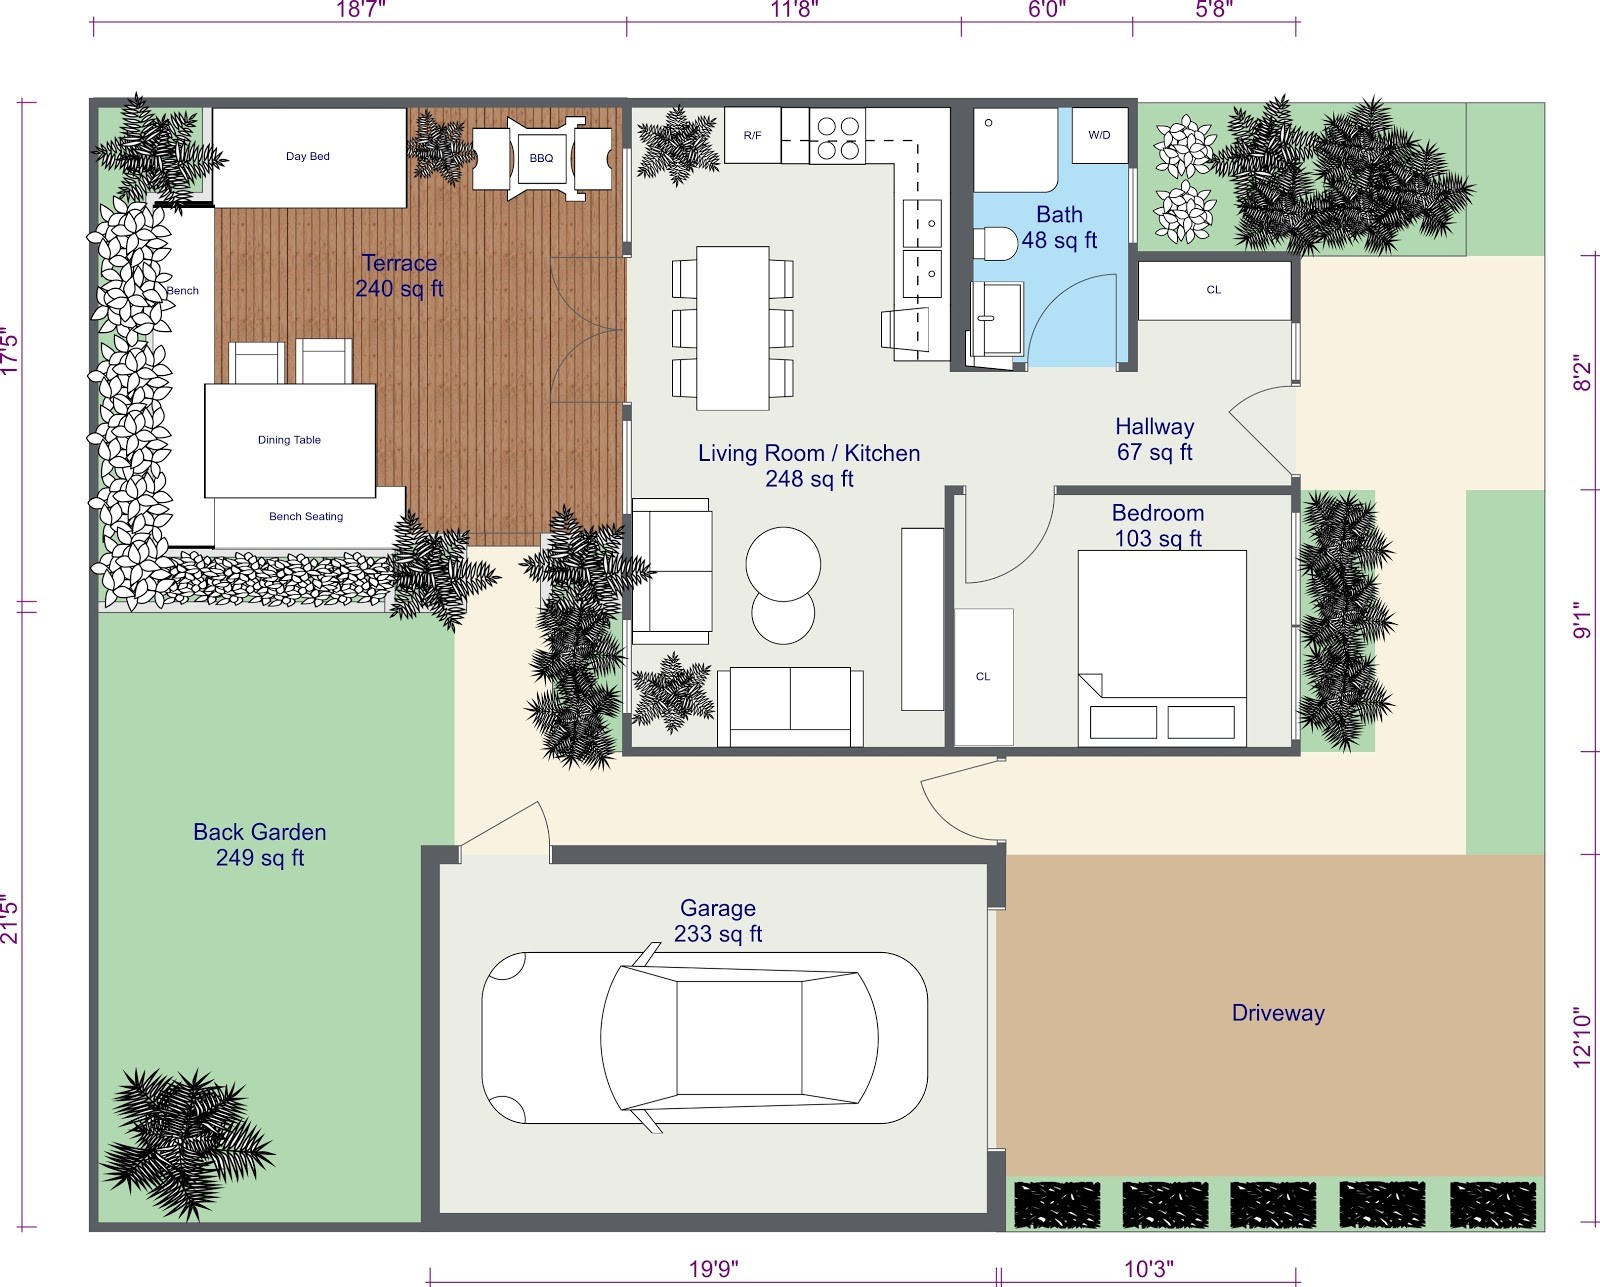 Roomsketcher Mac Create A 2d Site Plan Web Roomsketcher Help Center